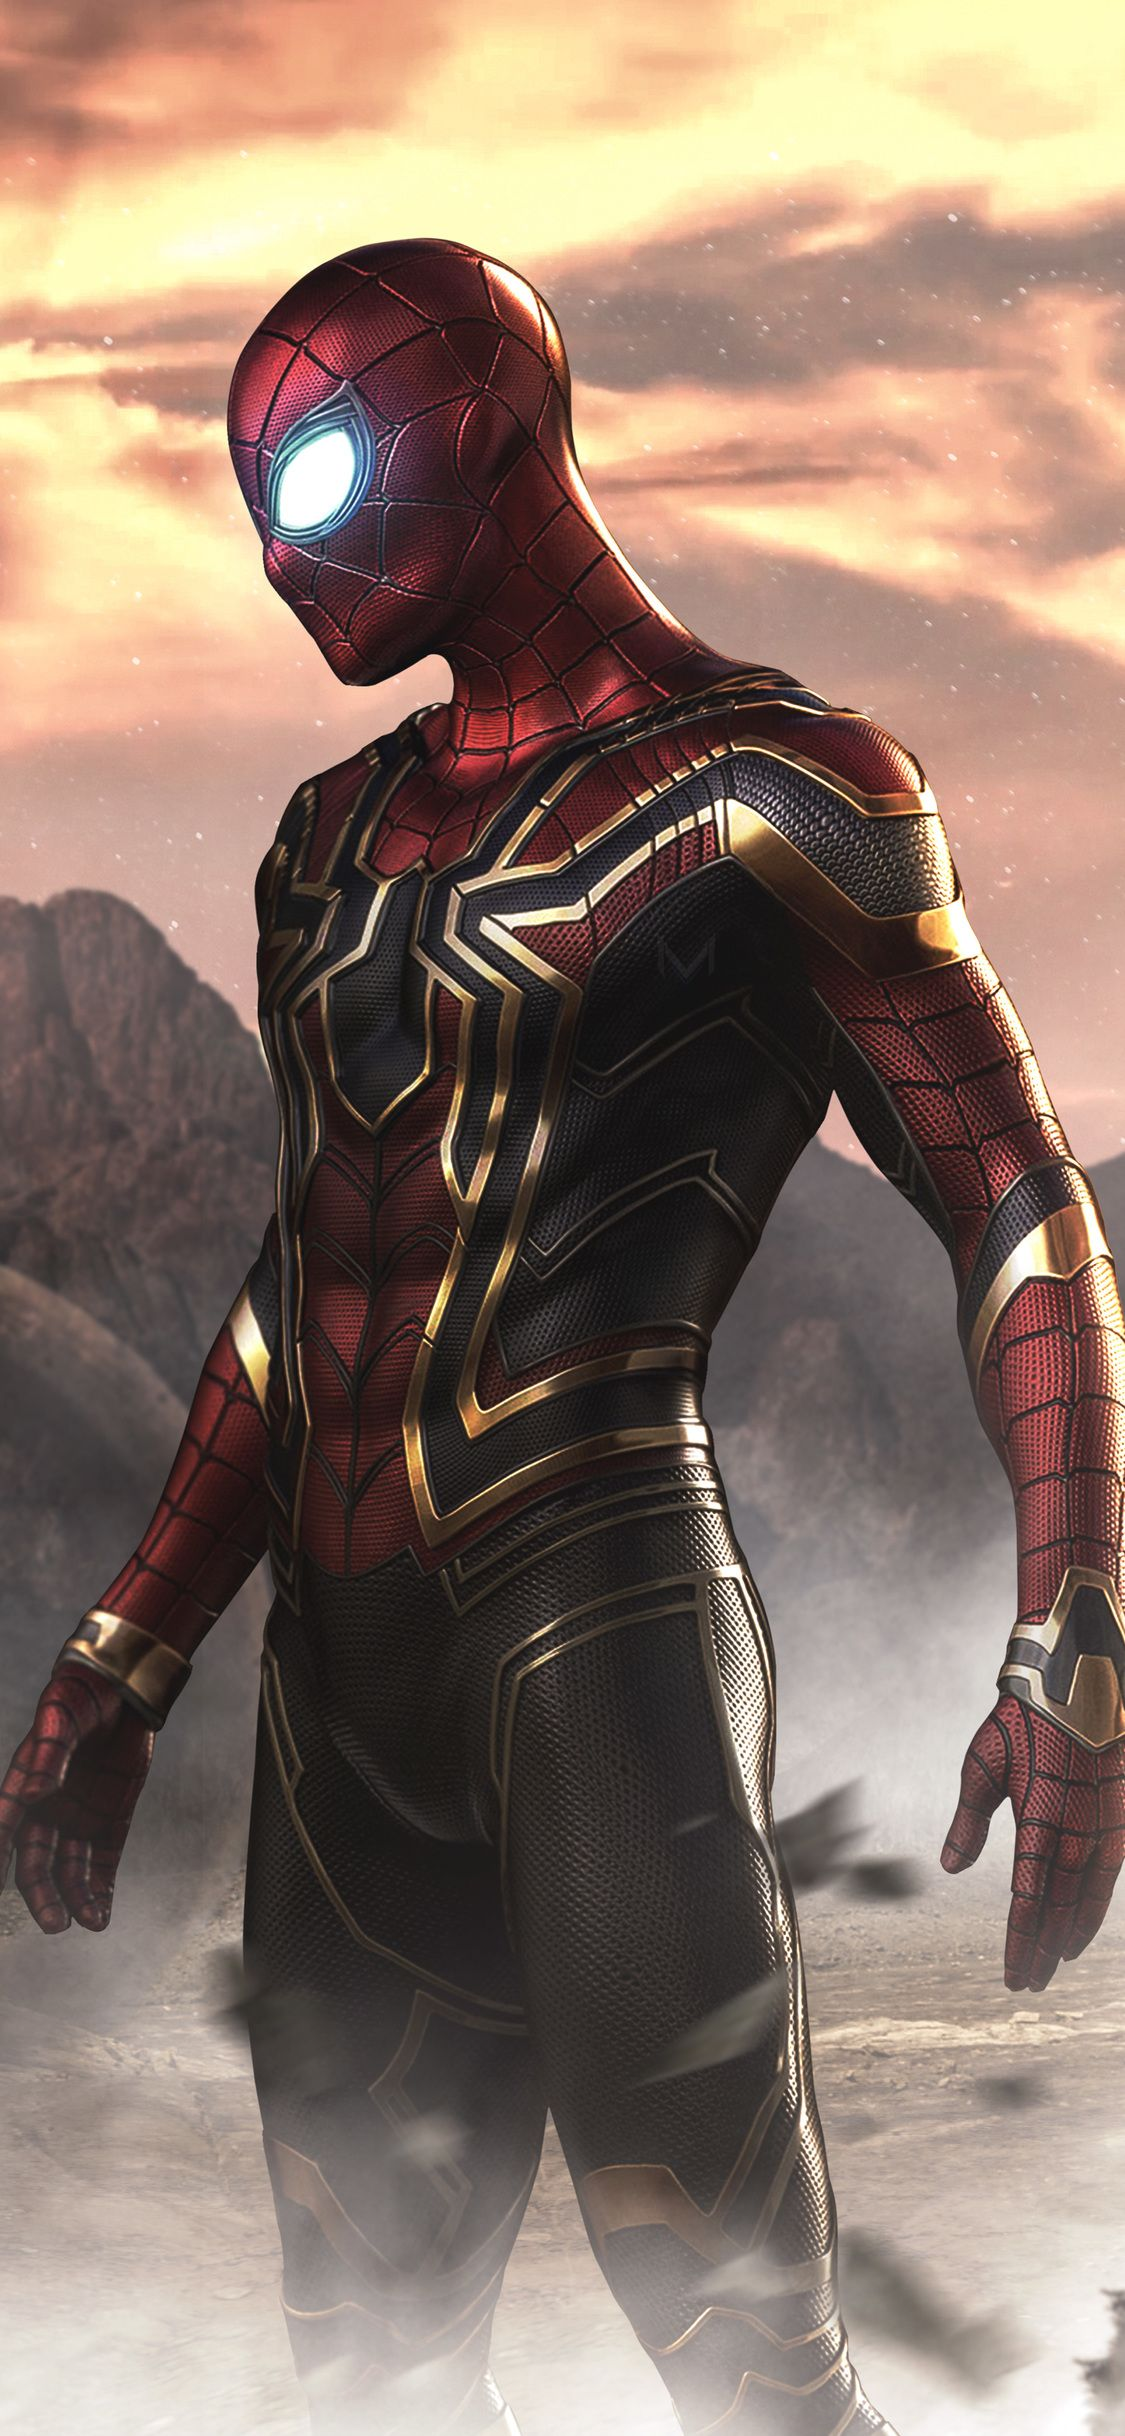 1125x2436 Spiderman Far From Home Movie Iphone XS,Iphone